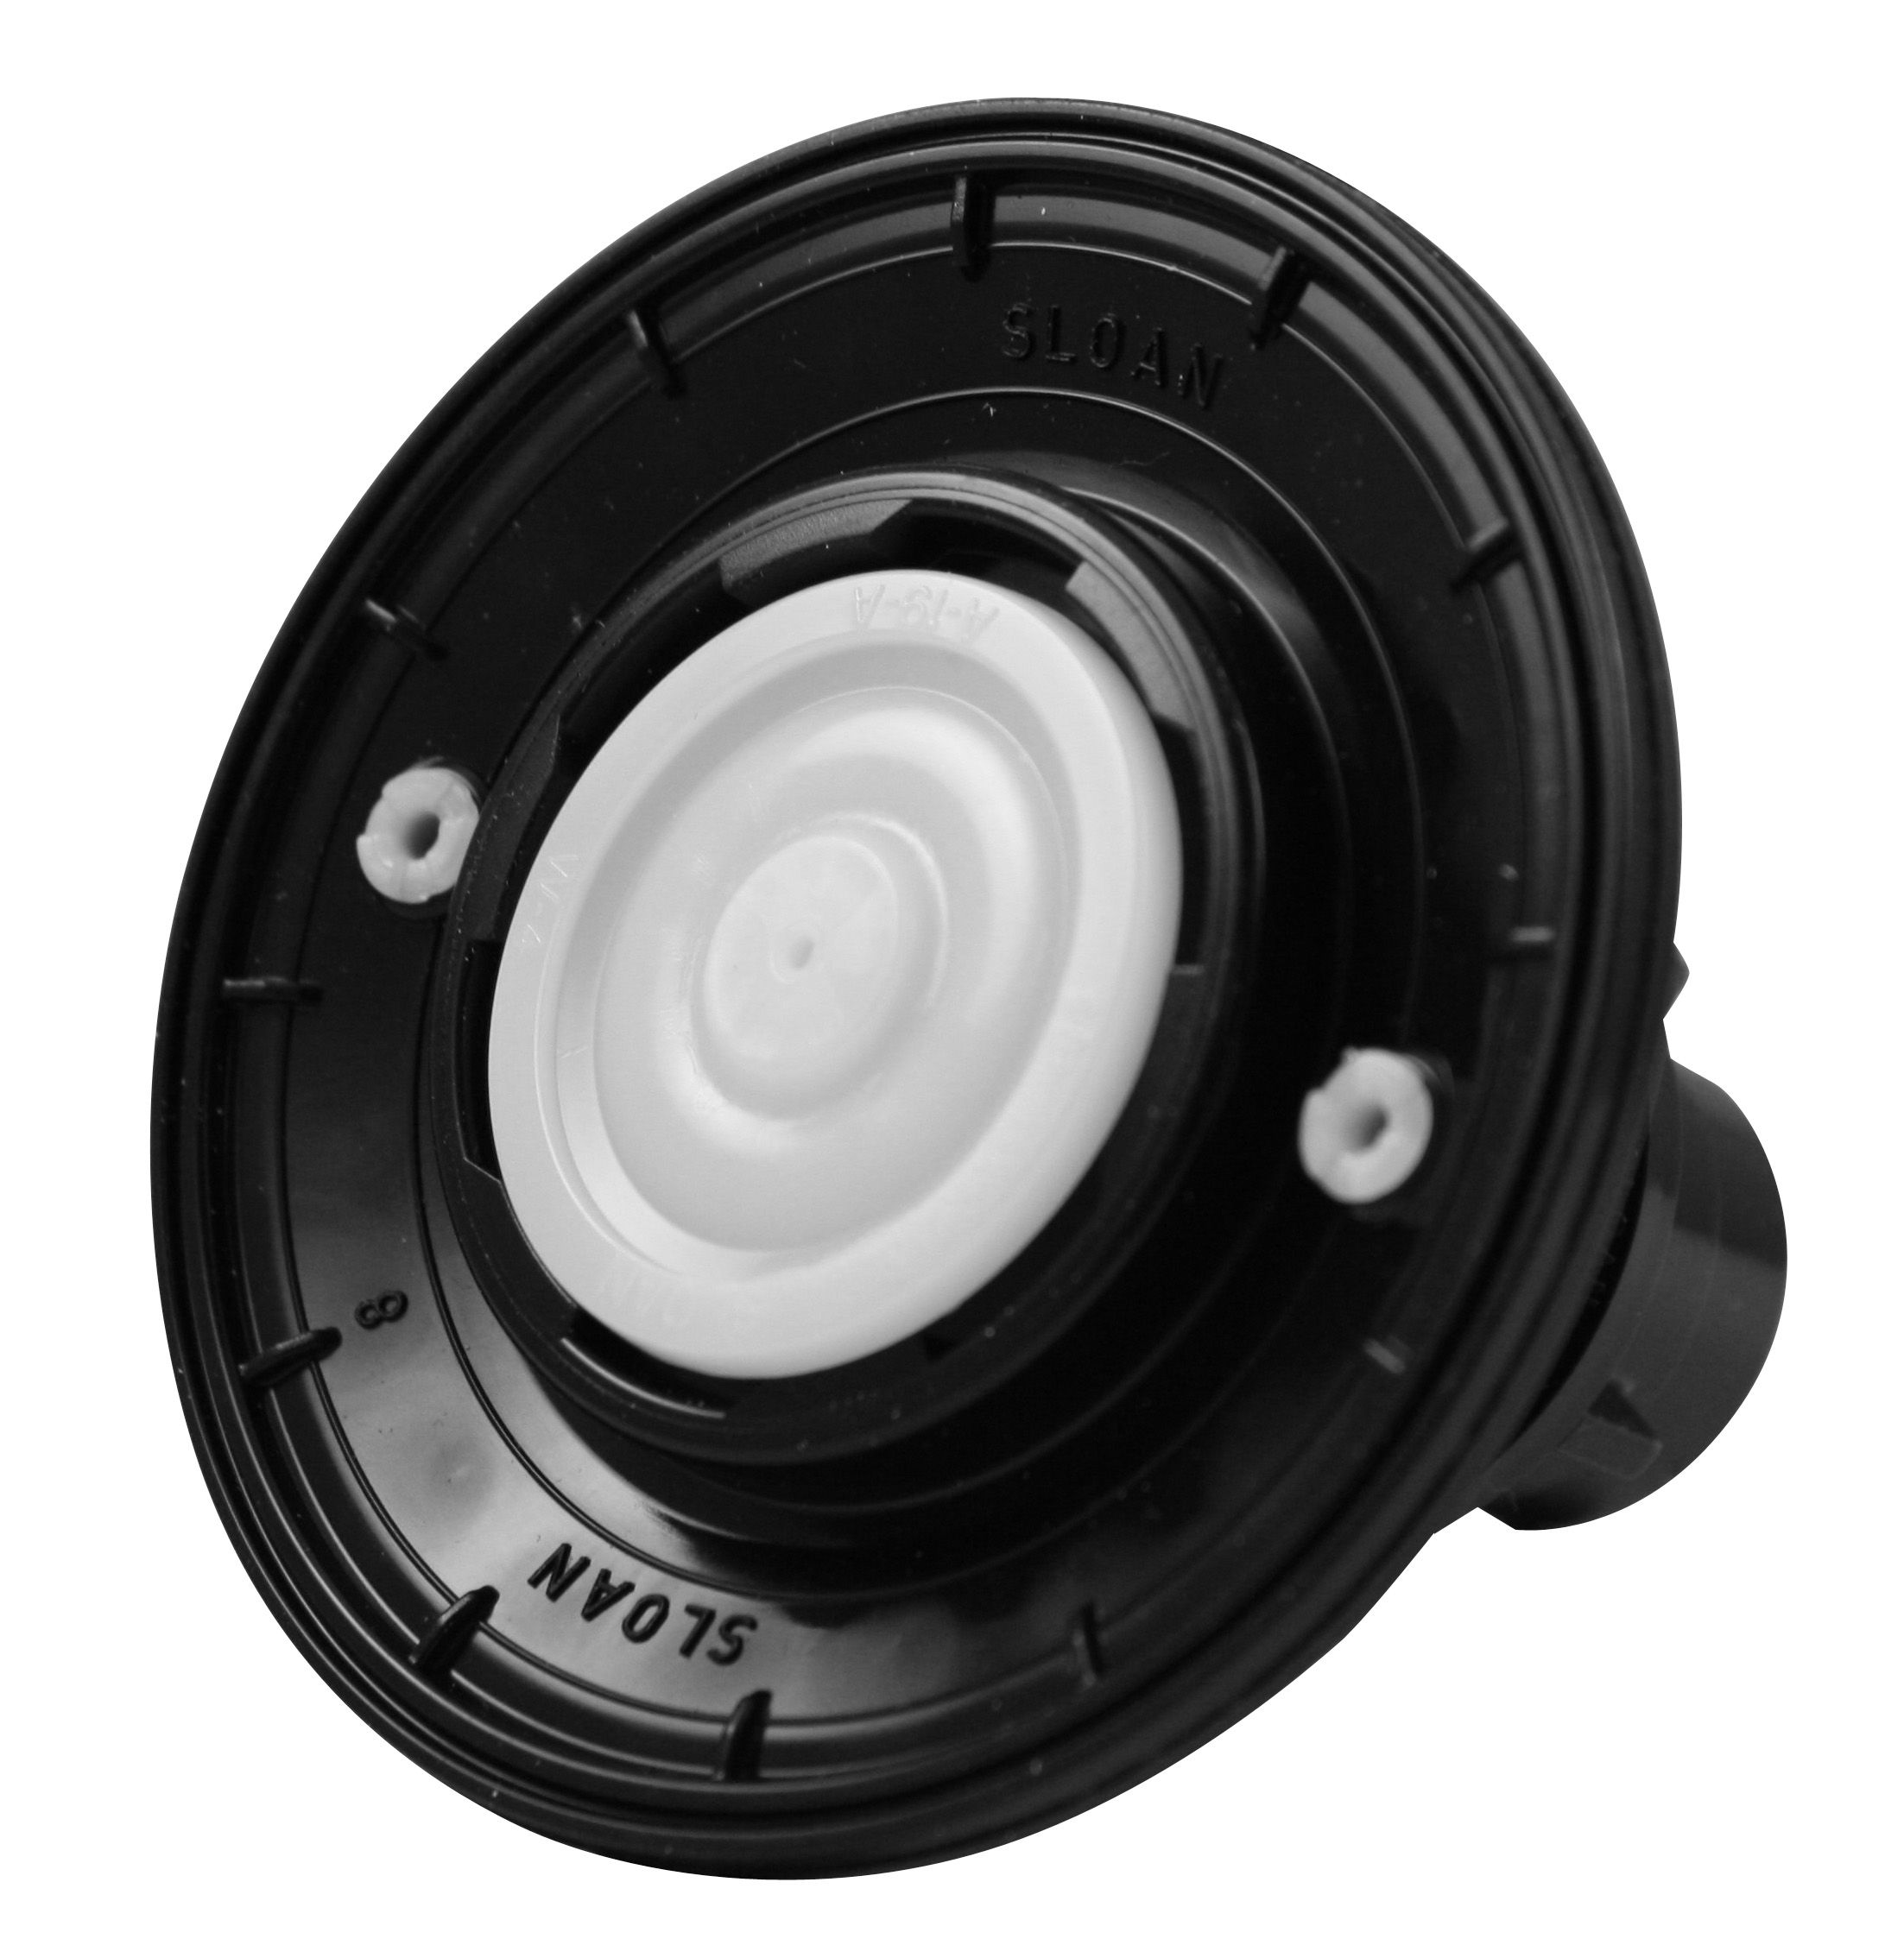 Sloan 3301142 N/A Royal® Diaphragm Only 0.25 GPF For High Efficiency ...